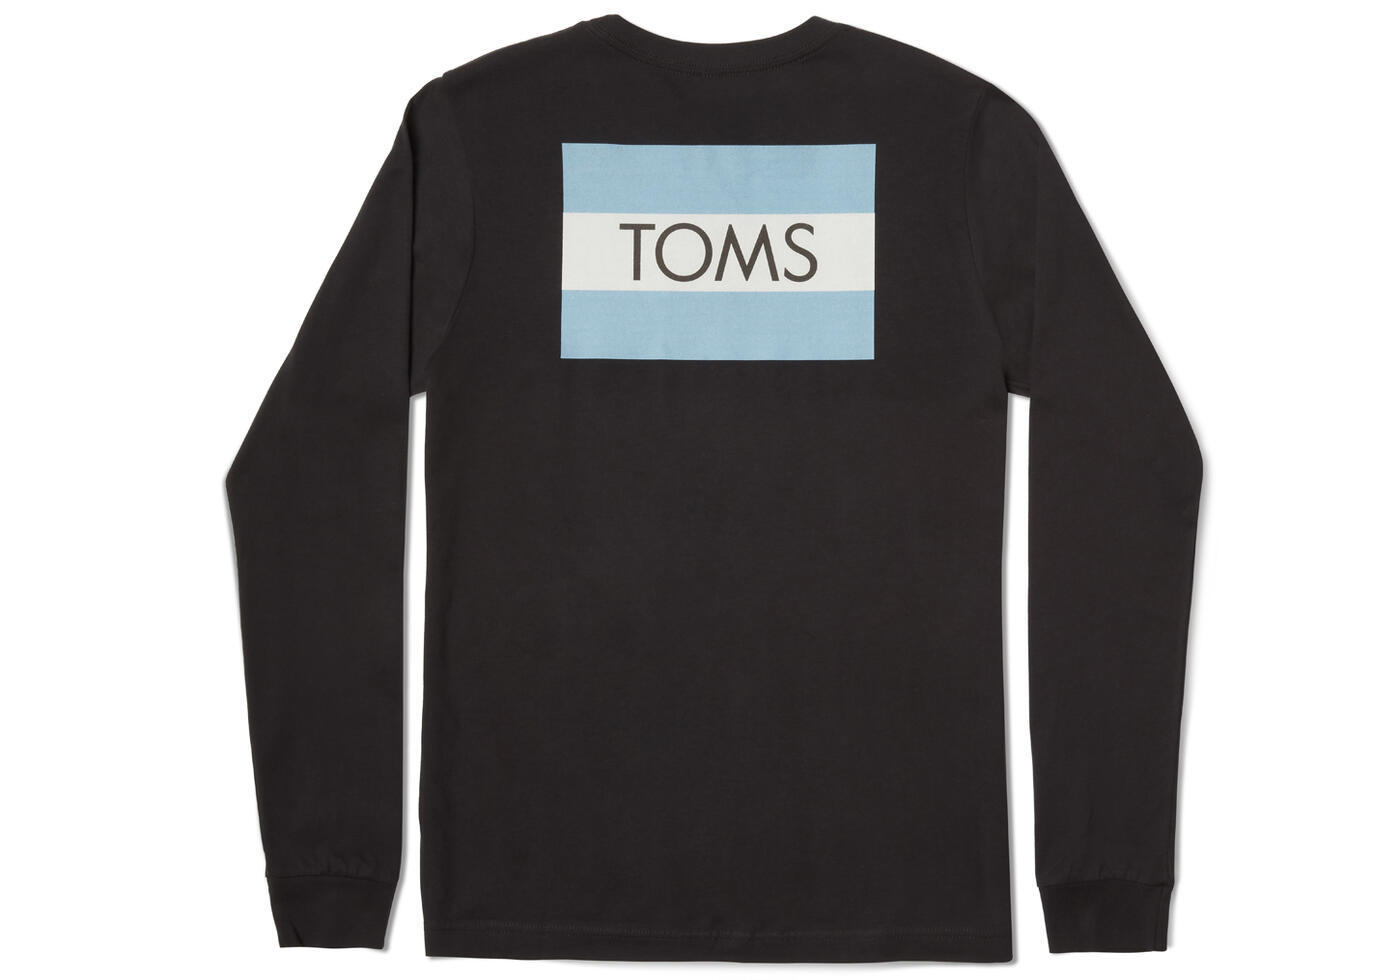 shop toms clothing